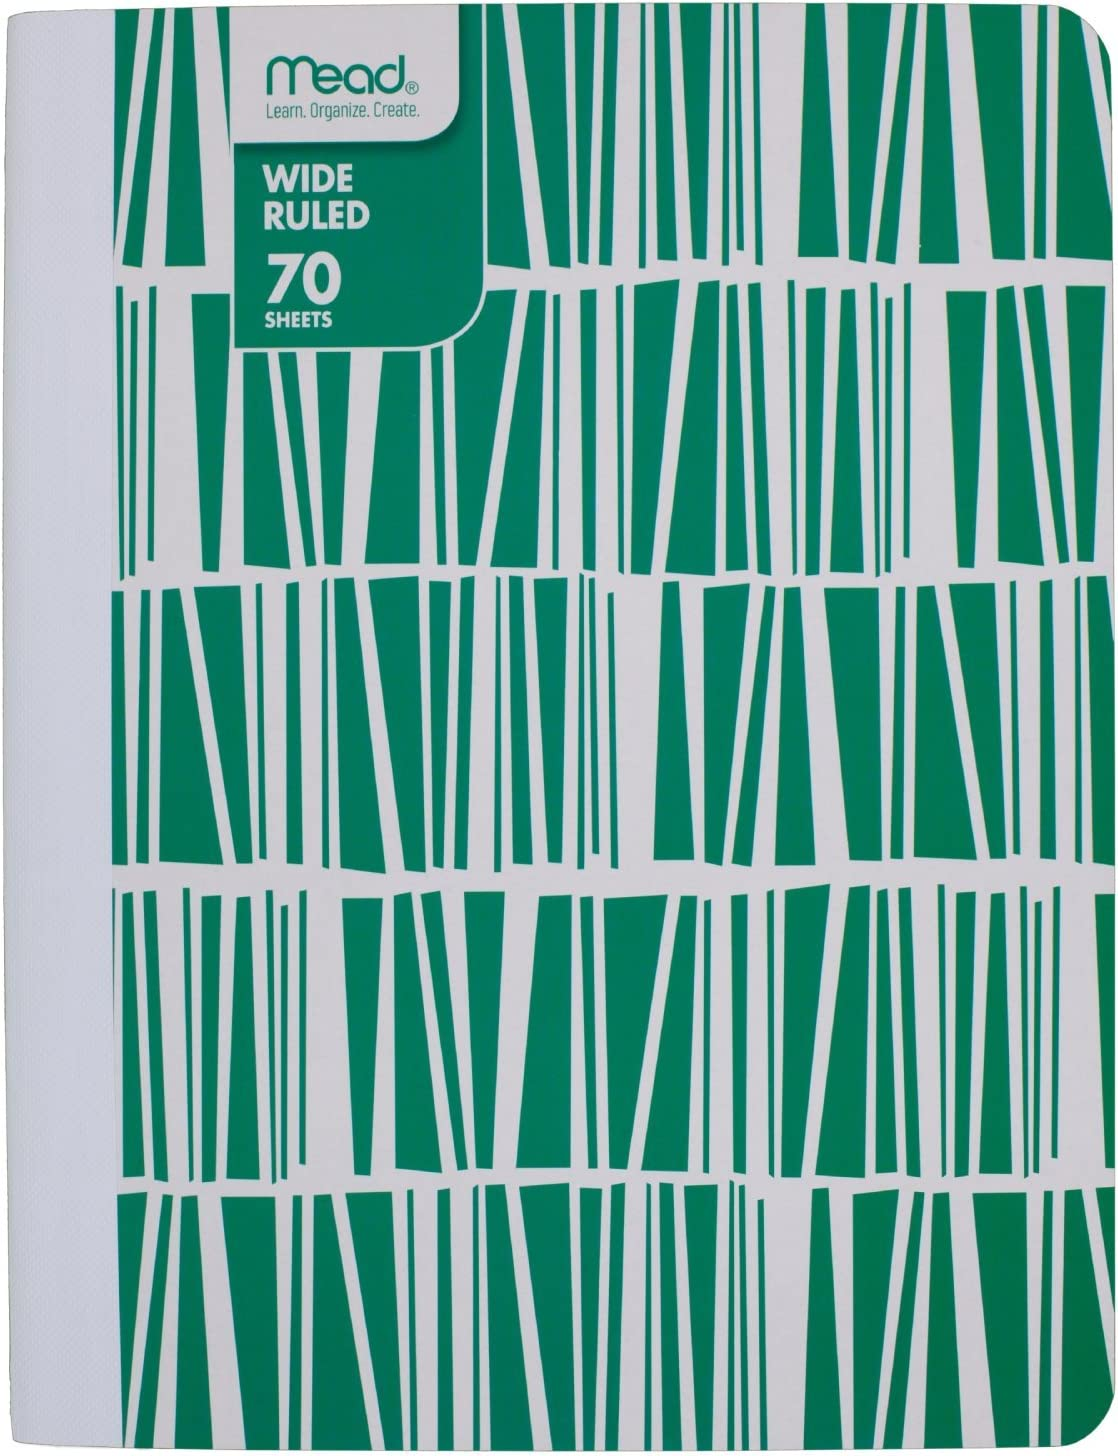 Designs Selected For You 09358 Fashion Wide Ruled Paper 70 Sheets Mead Composition Book//Notebook